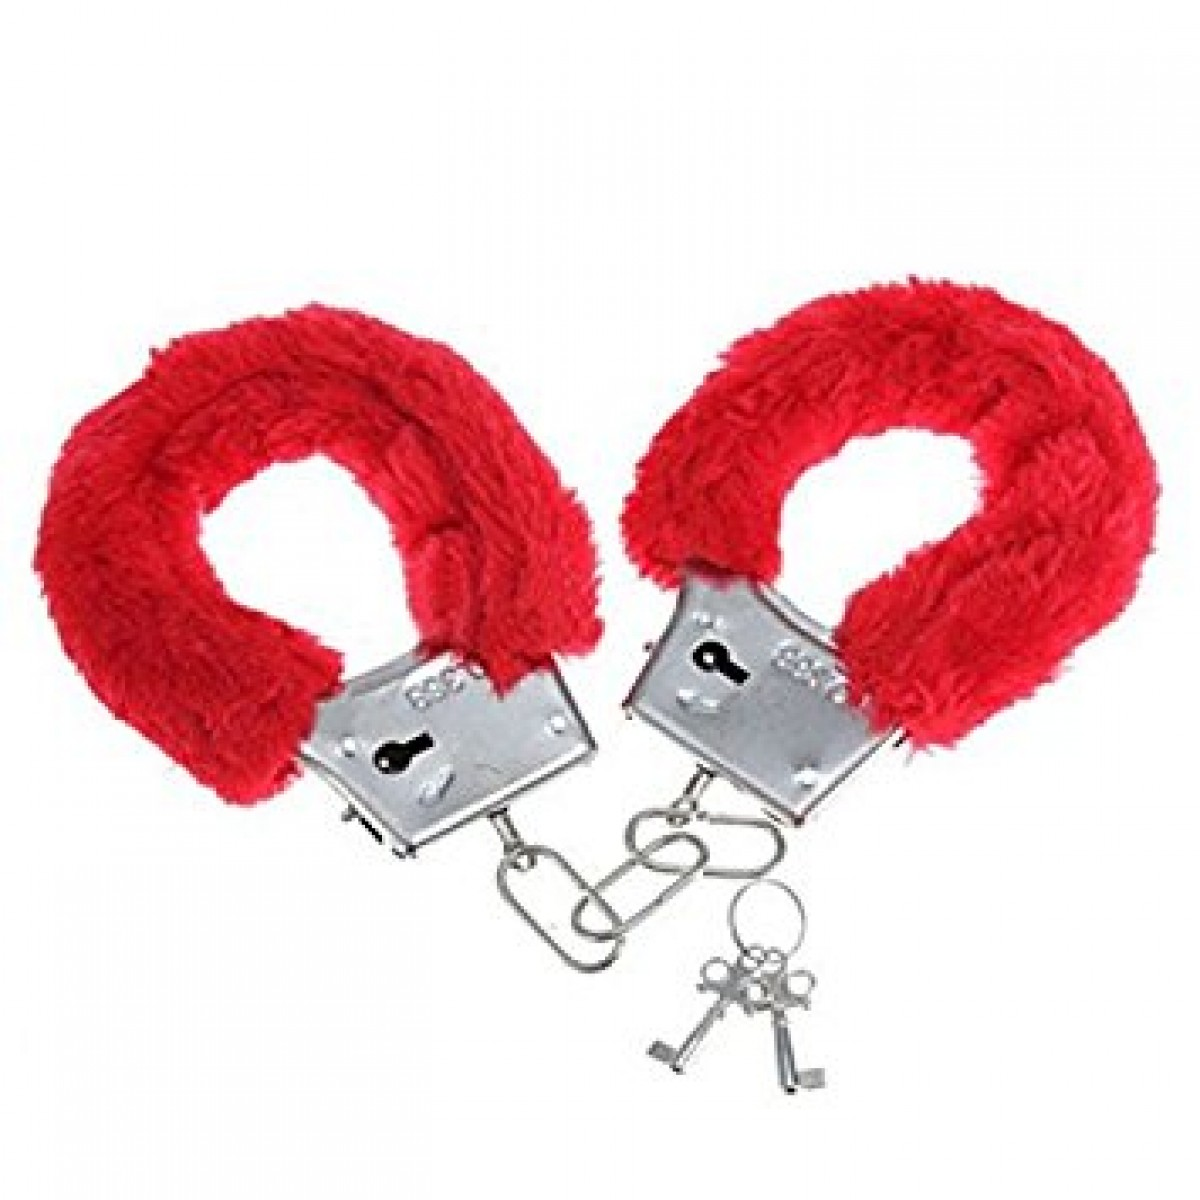 Gojilove love more handcuffs- RED